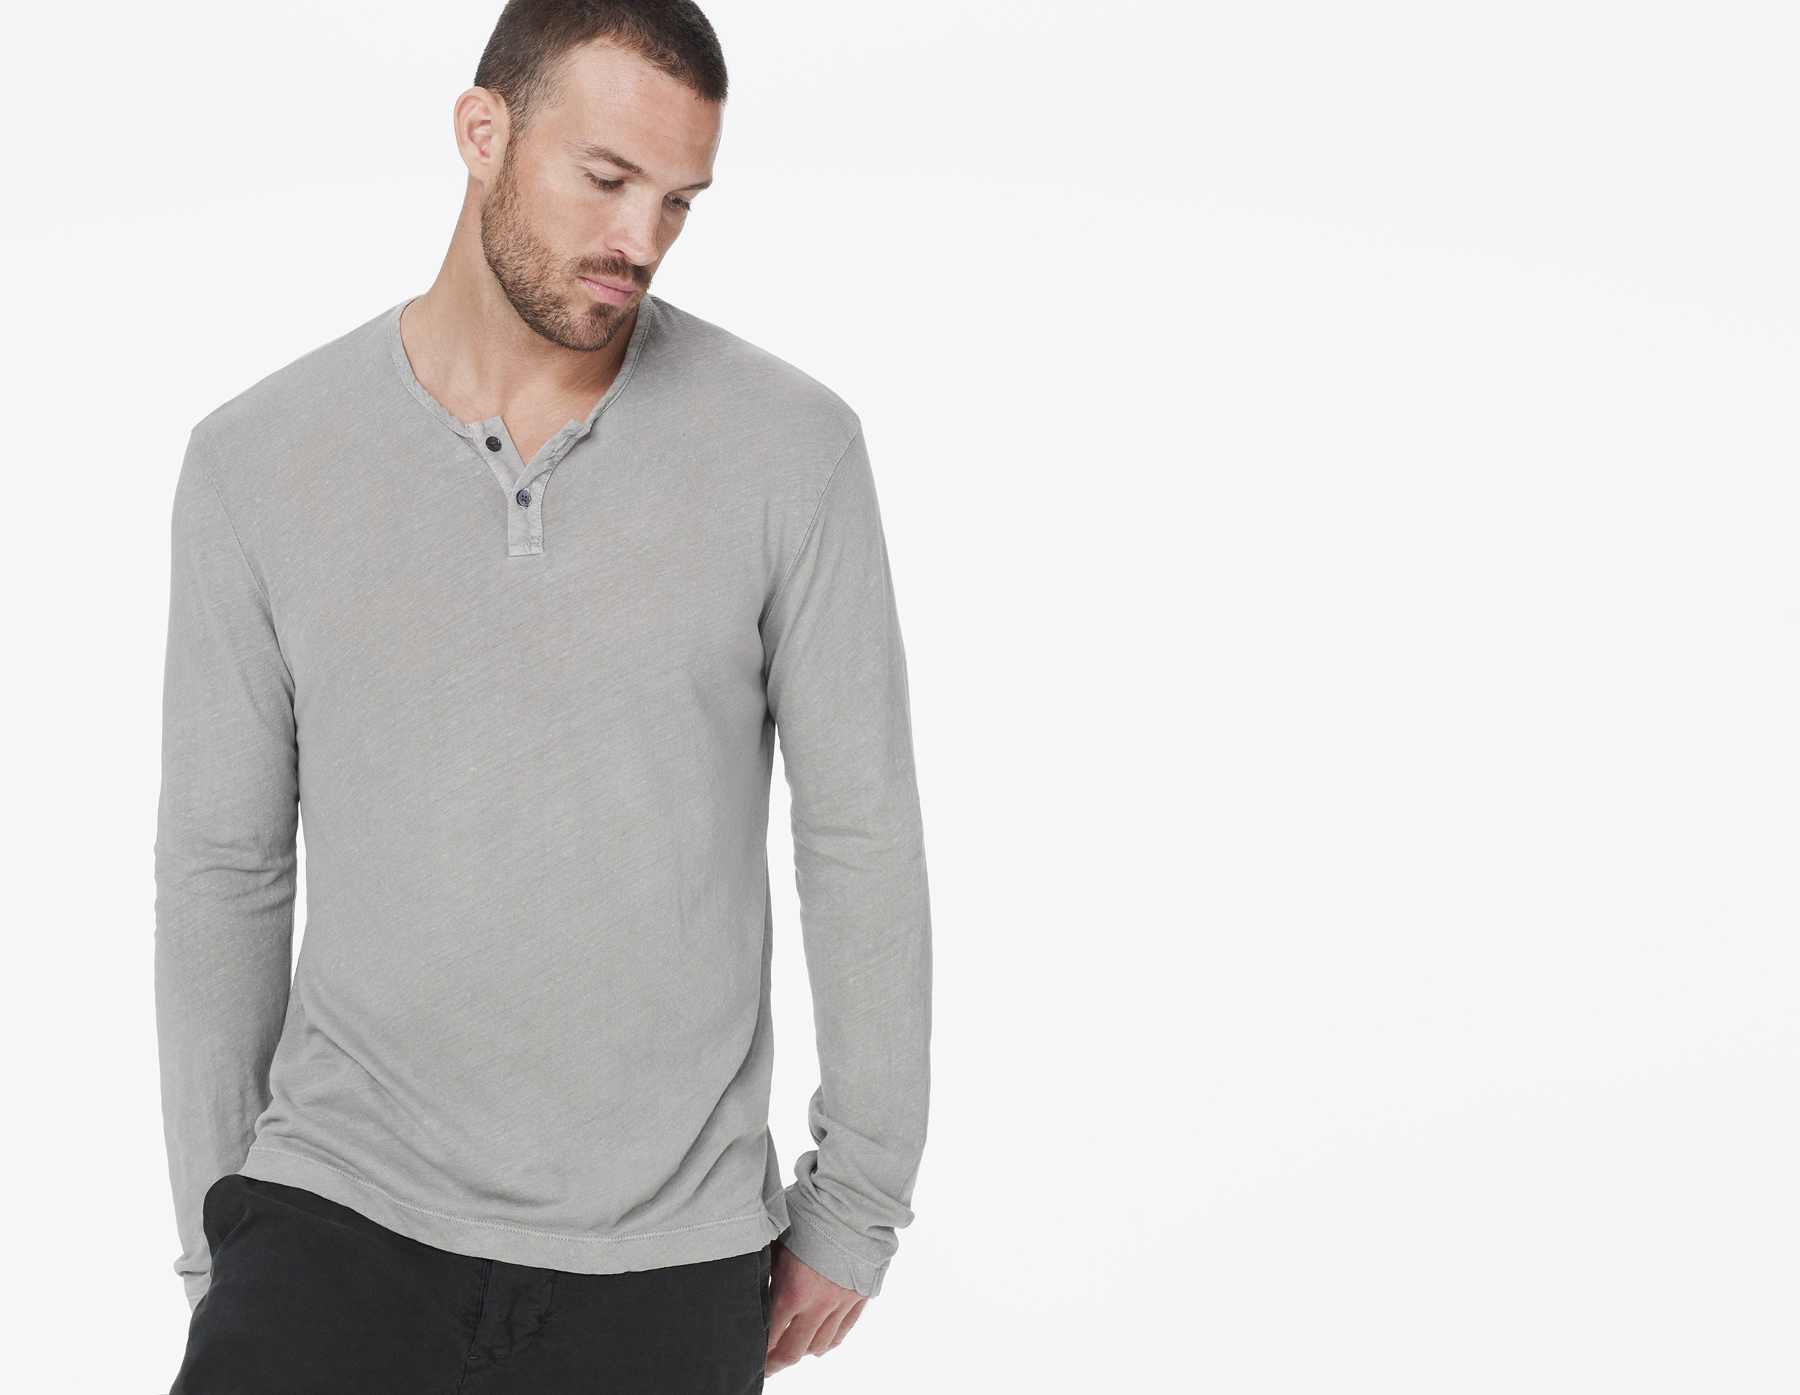 Lyst james perse linen blend long sleeve henley in gray for James perse henley shirt